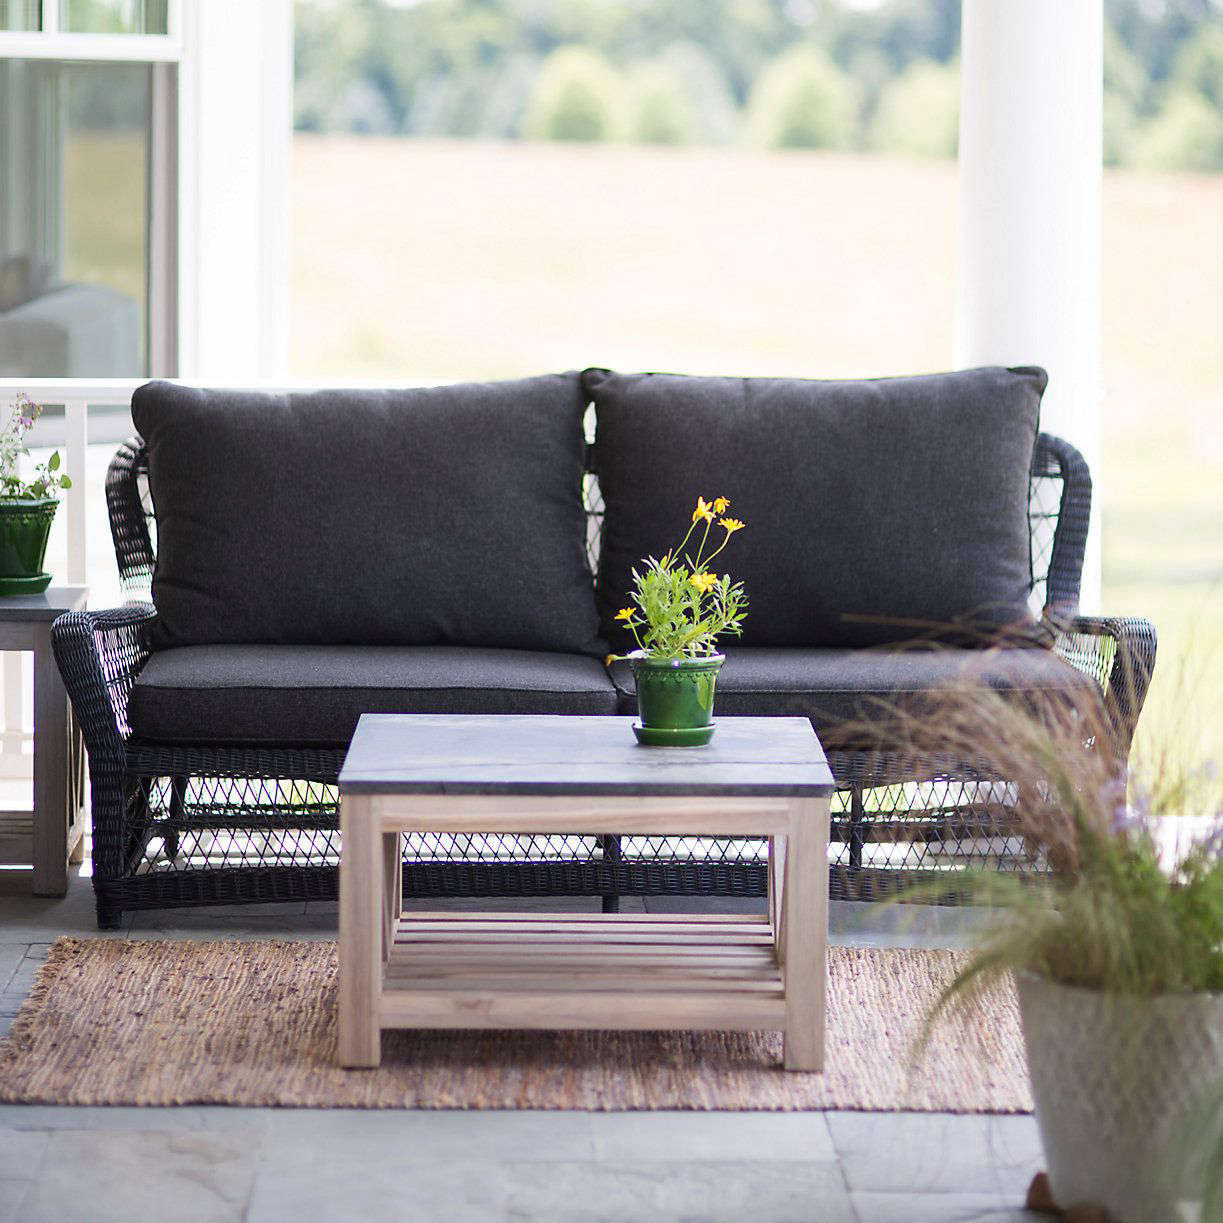 A 73-inch Curved All Weather Wicker SofaCurved All Weather Wicker Sofa is  31.5 inches - Object Of Desire: Classic Black Wicker Furniture - Gardenista